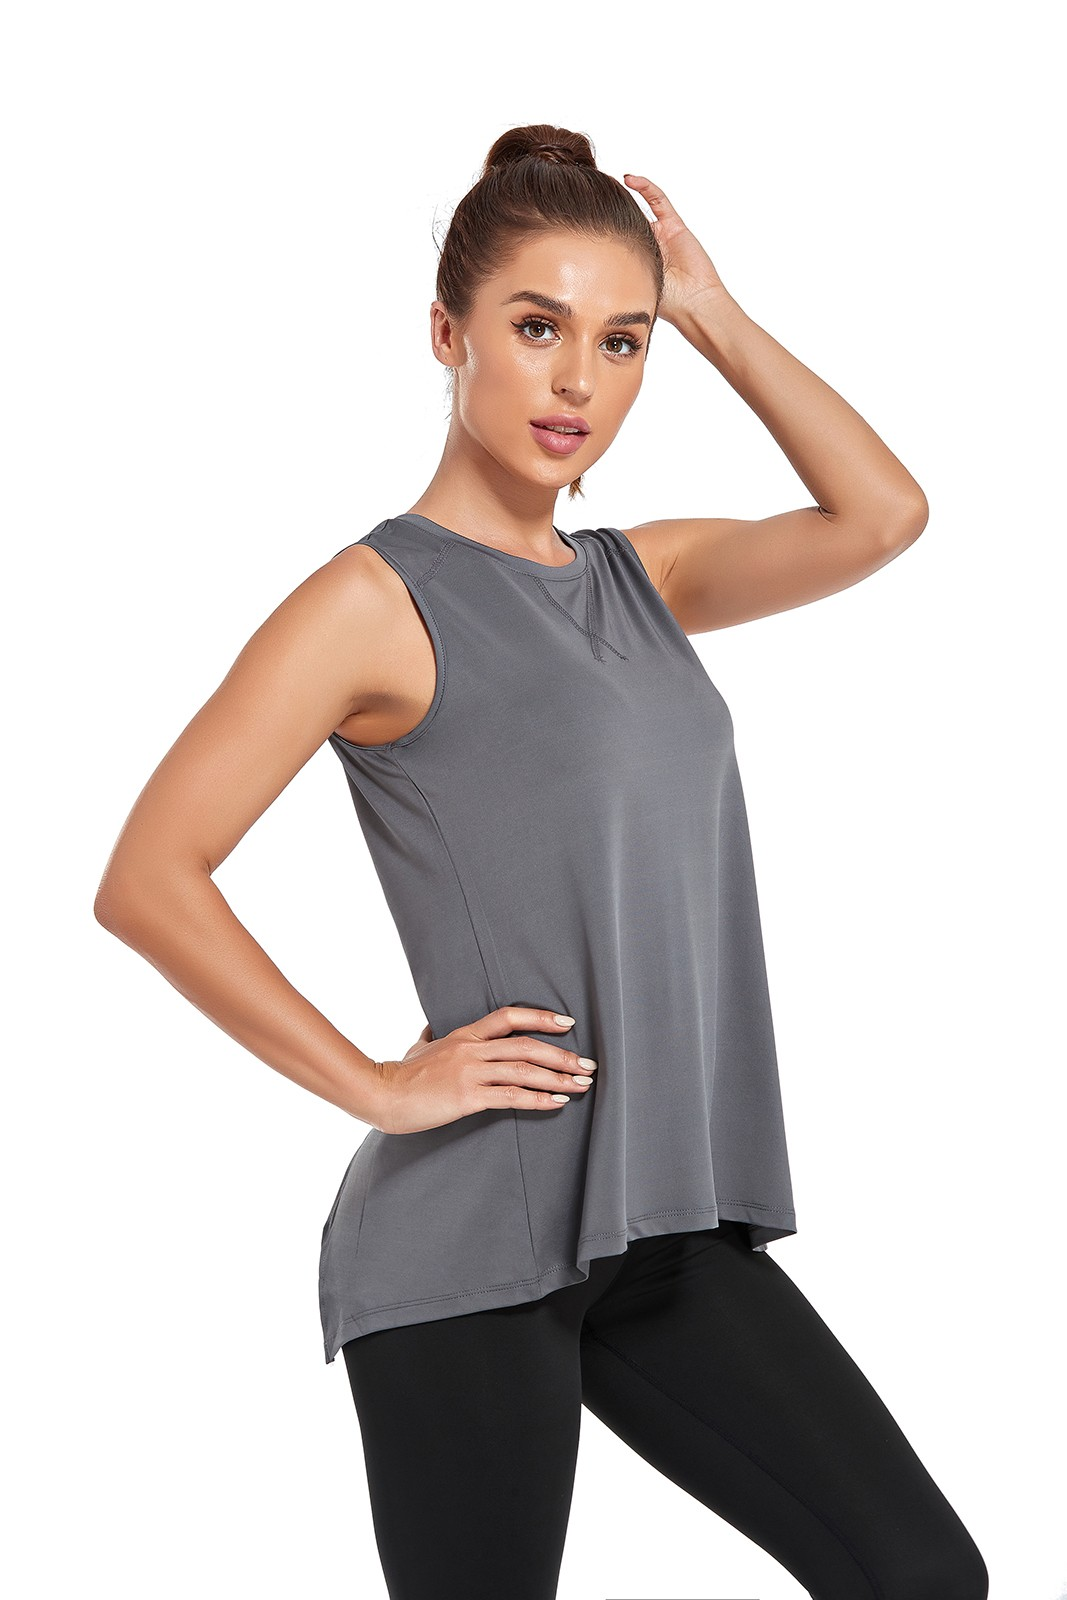 product-Elastic Fabric Sports Tops Running T Shirt Woman Athletic Vest-Ruiteng-img